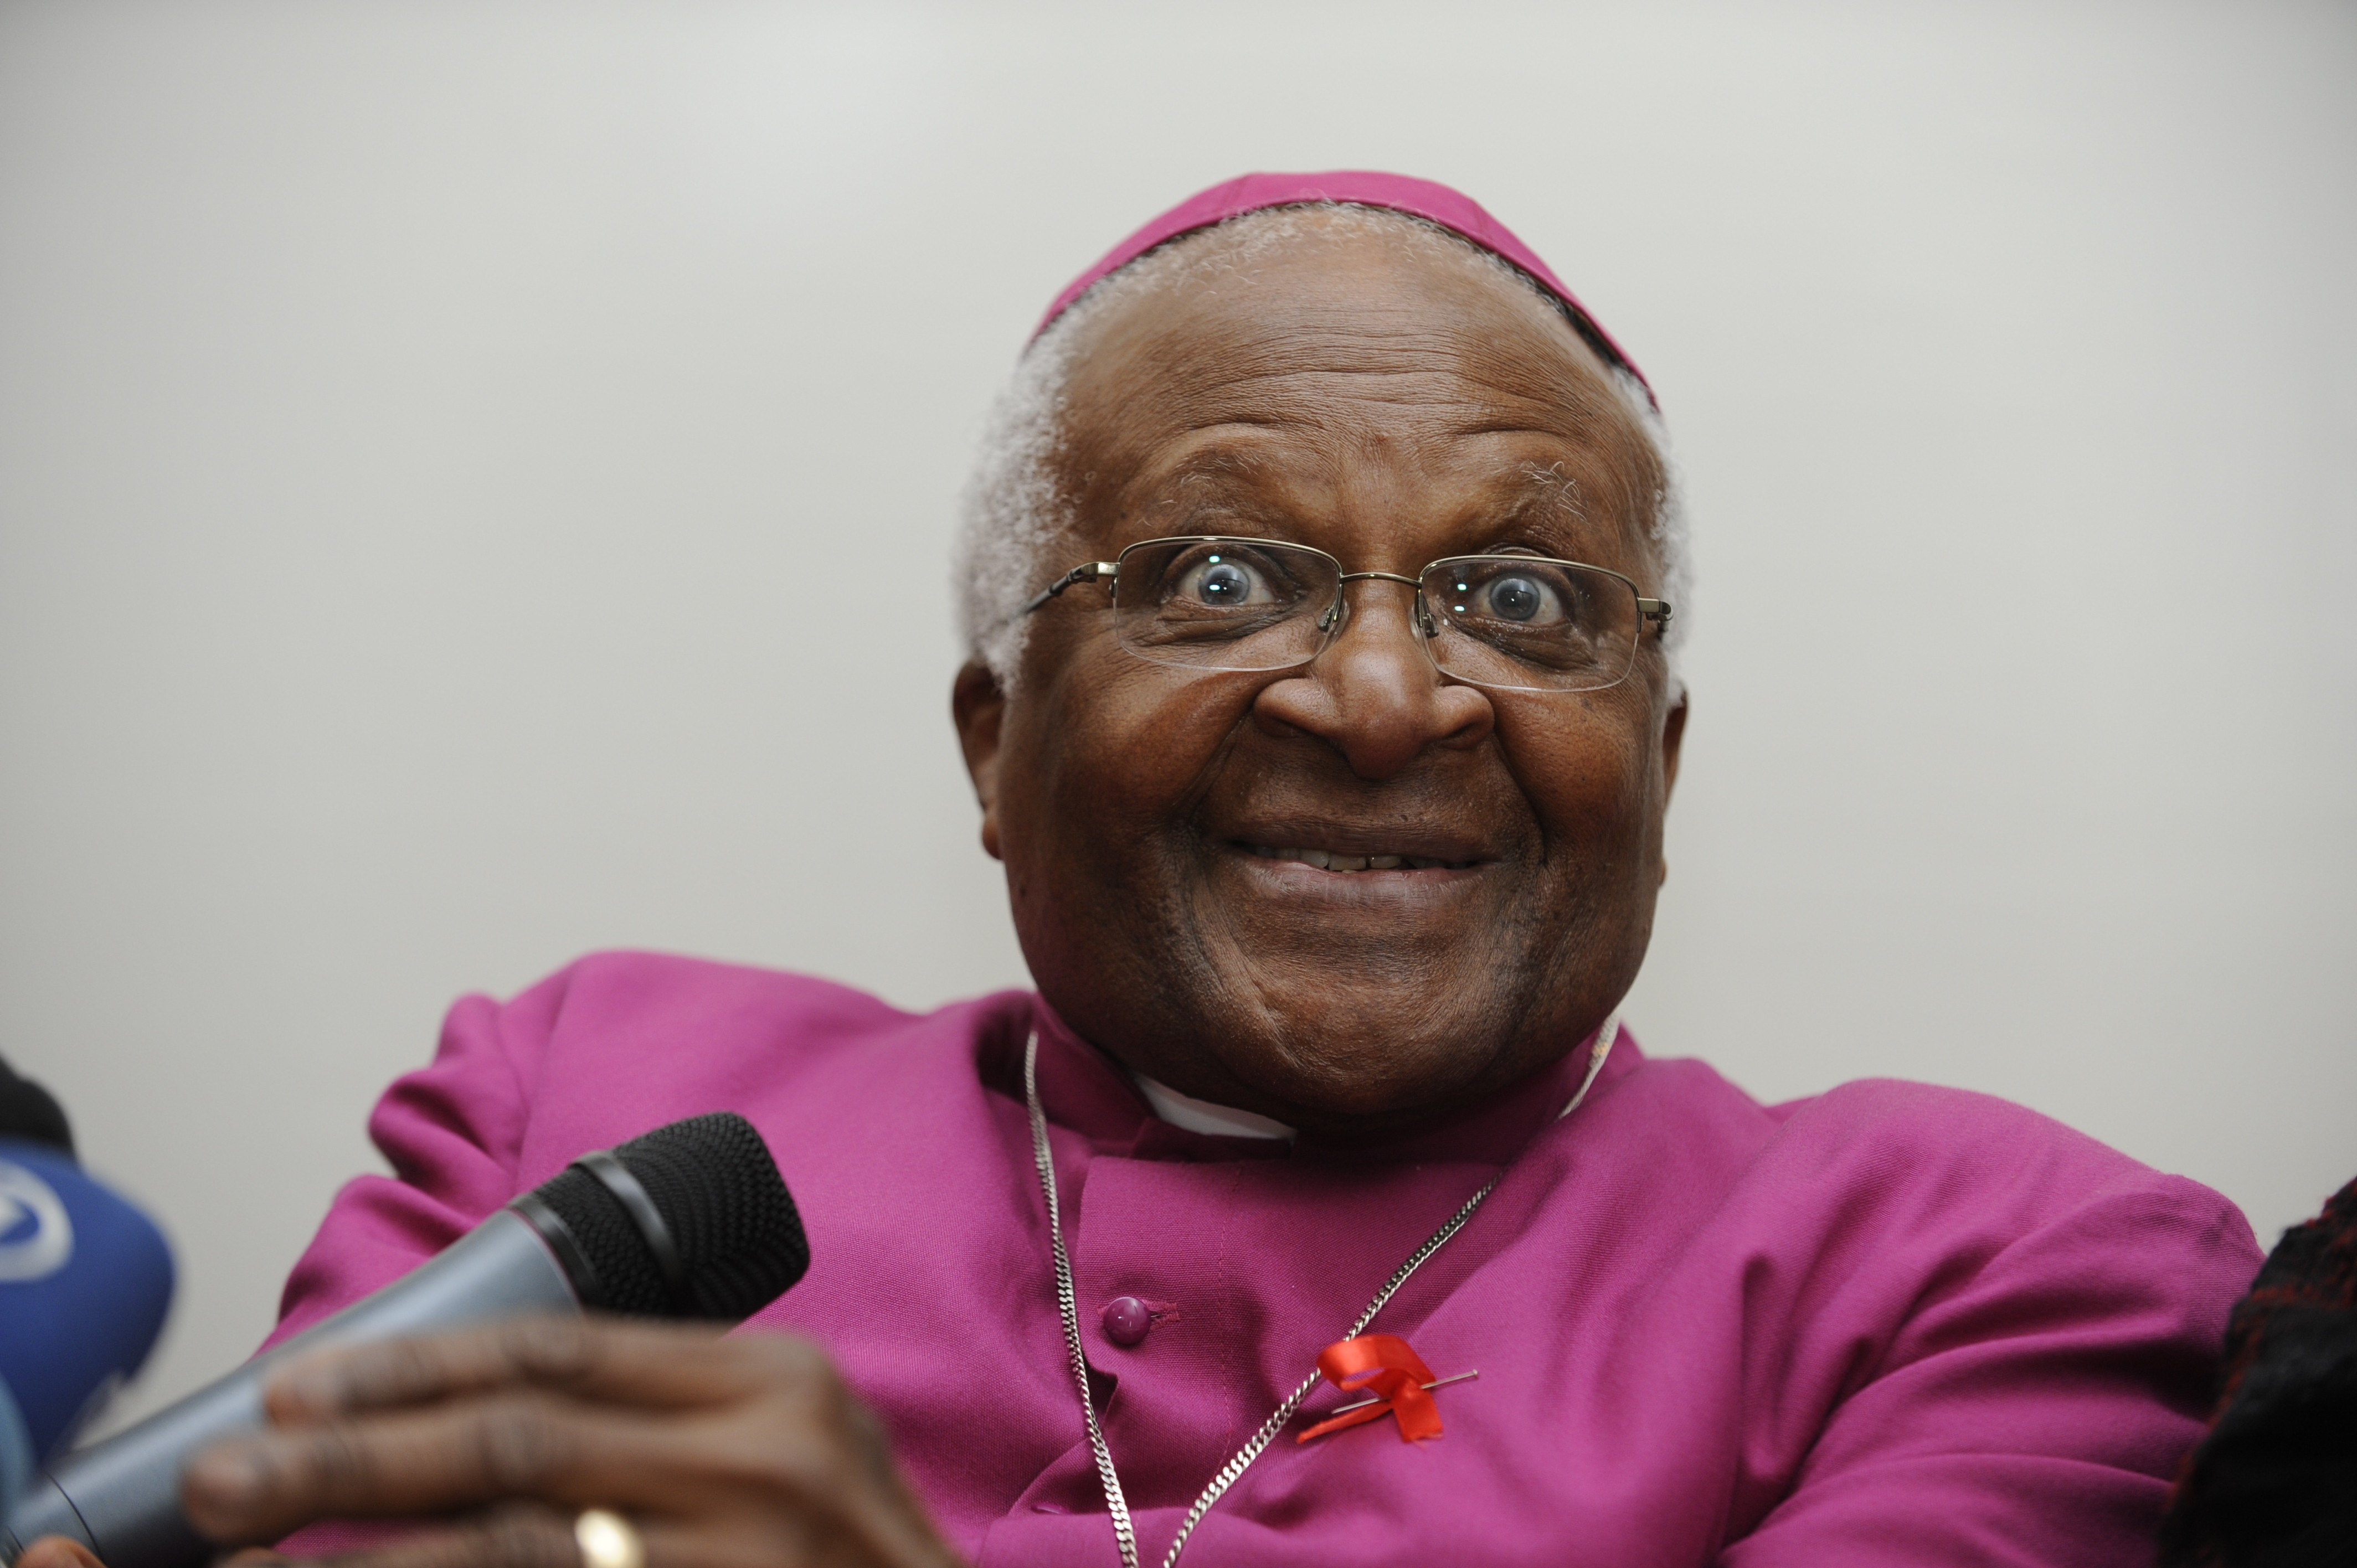 DESMOND TUTU SEVERE TIES WITH OXFARM OVER SX SCANDAL